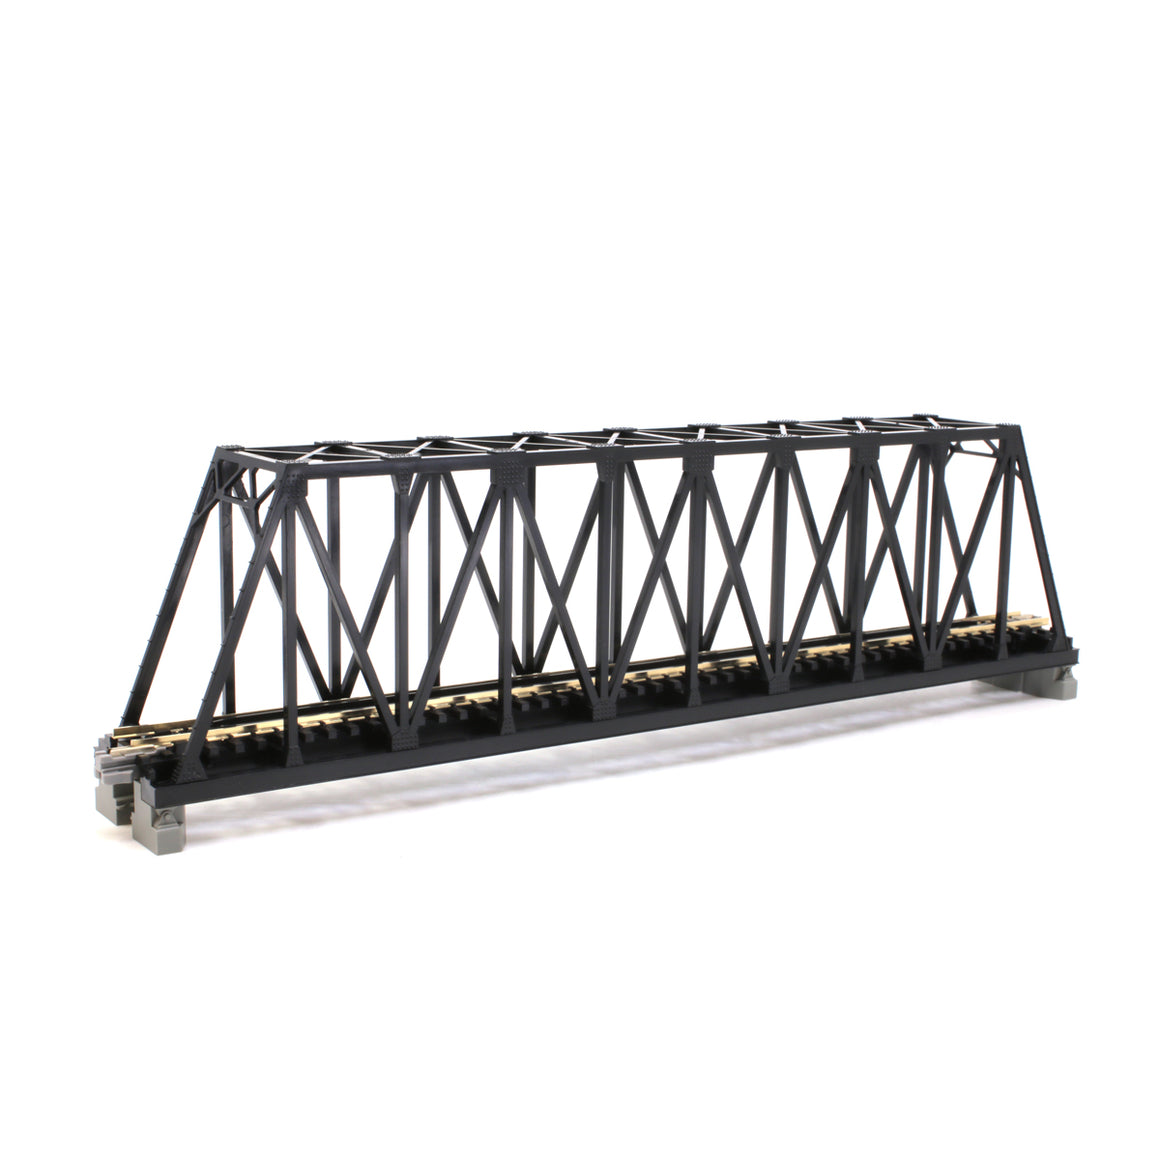 N Scale: Kato Unitrack - Single Track - Single-Truss Bridge